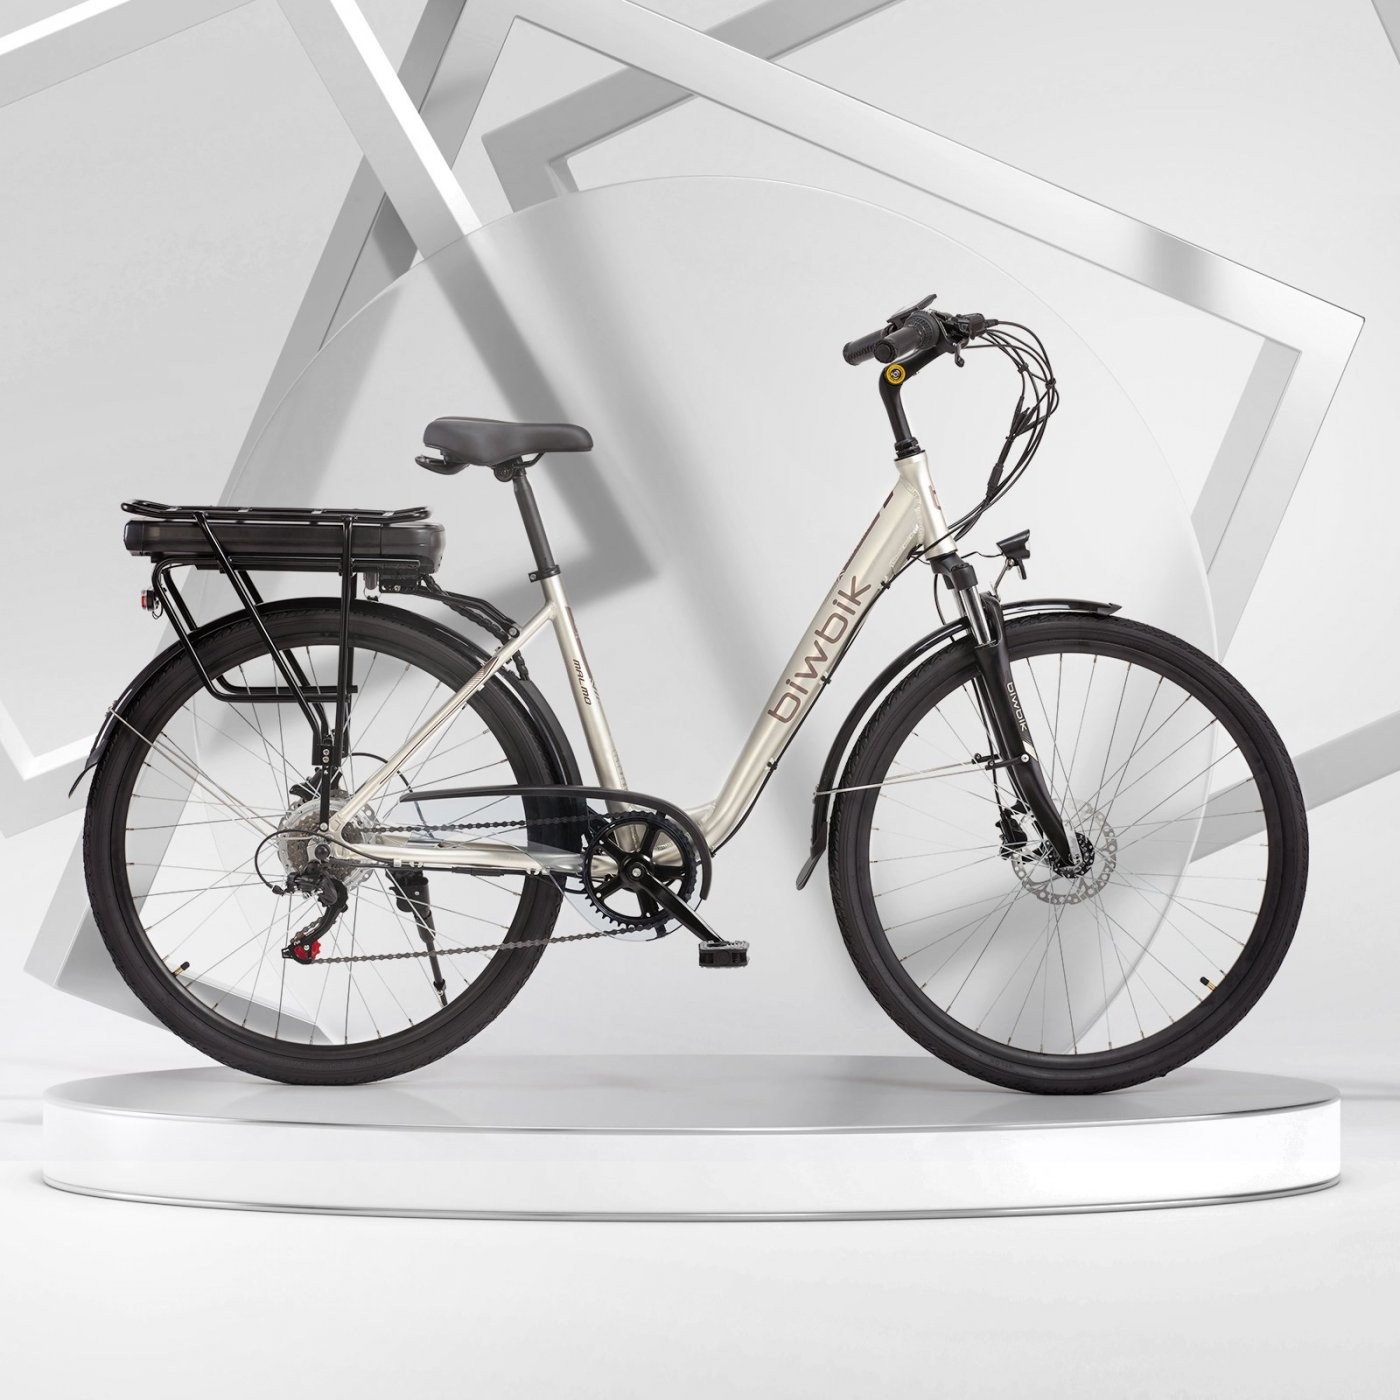 Malmo urban electric bike